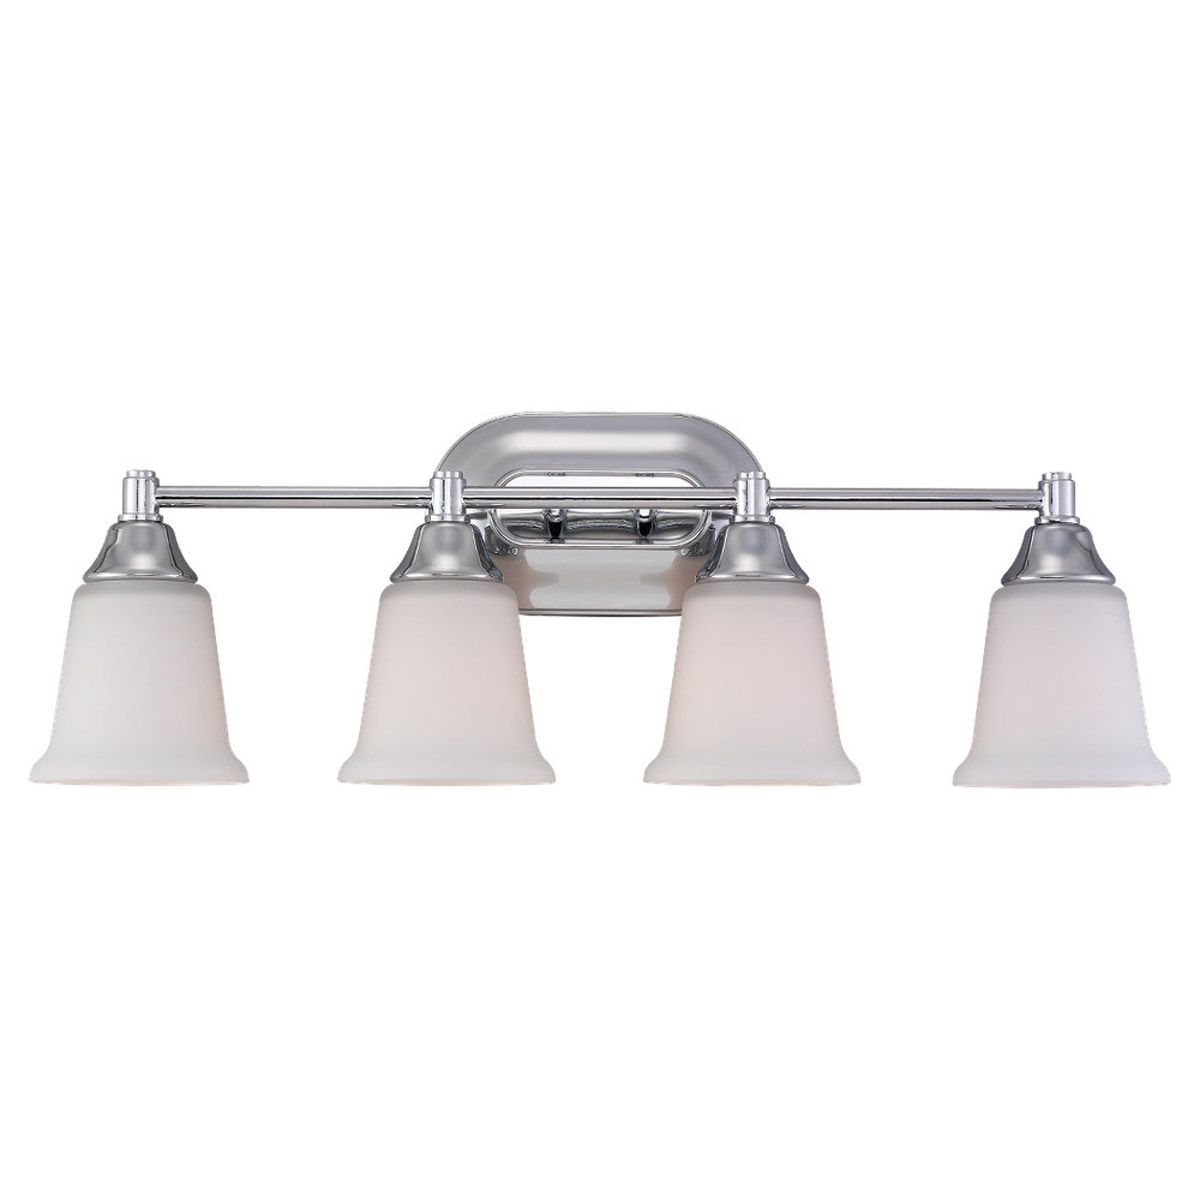 Sea Gull Lighting Belair 4 Light Fluorescent Wall/Bath/Vanity in Chrome 44793BLE-05 photo